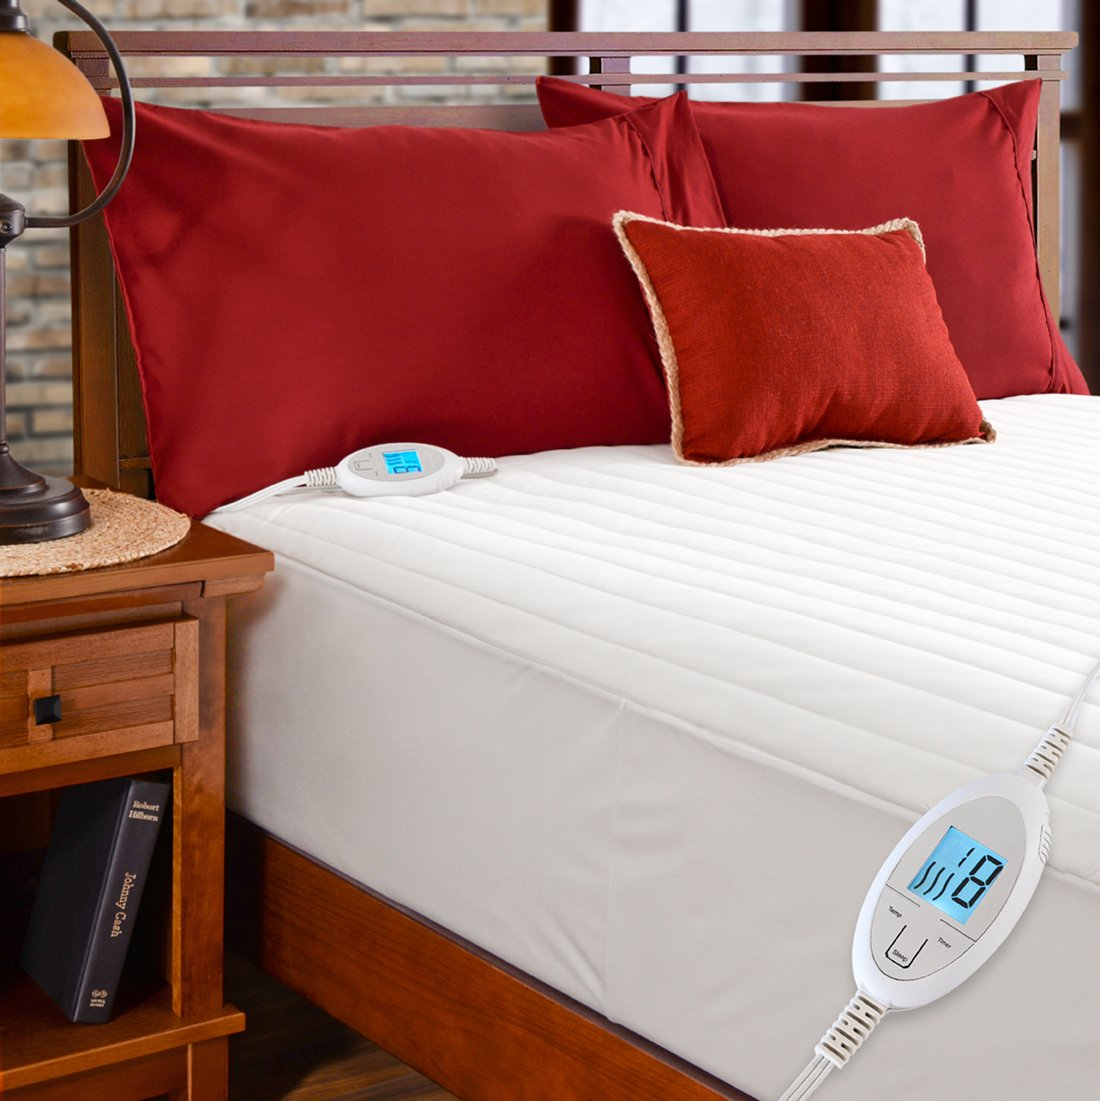 Simple Comfort Quilted Electric Heated Mattress Pad with SENSOR-SAFE Overheat Protection Technology (Twin Size w/Single Controller)